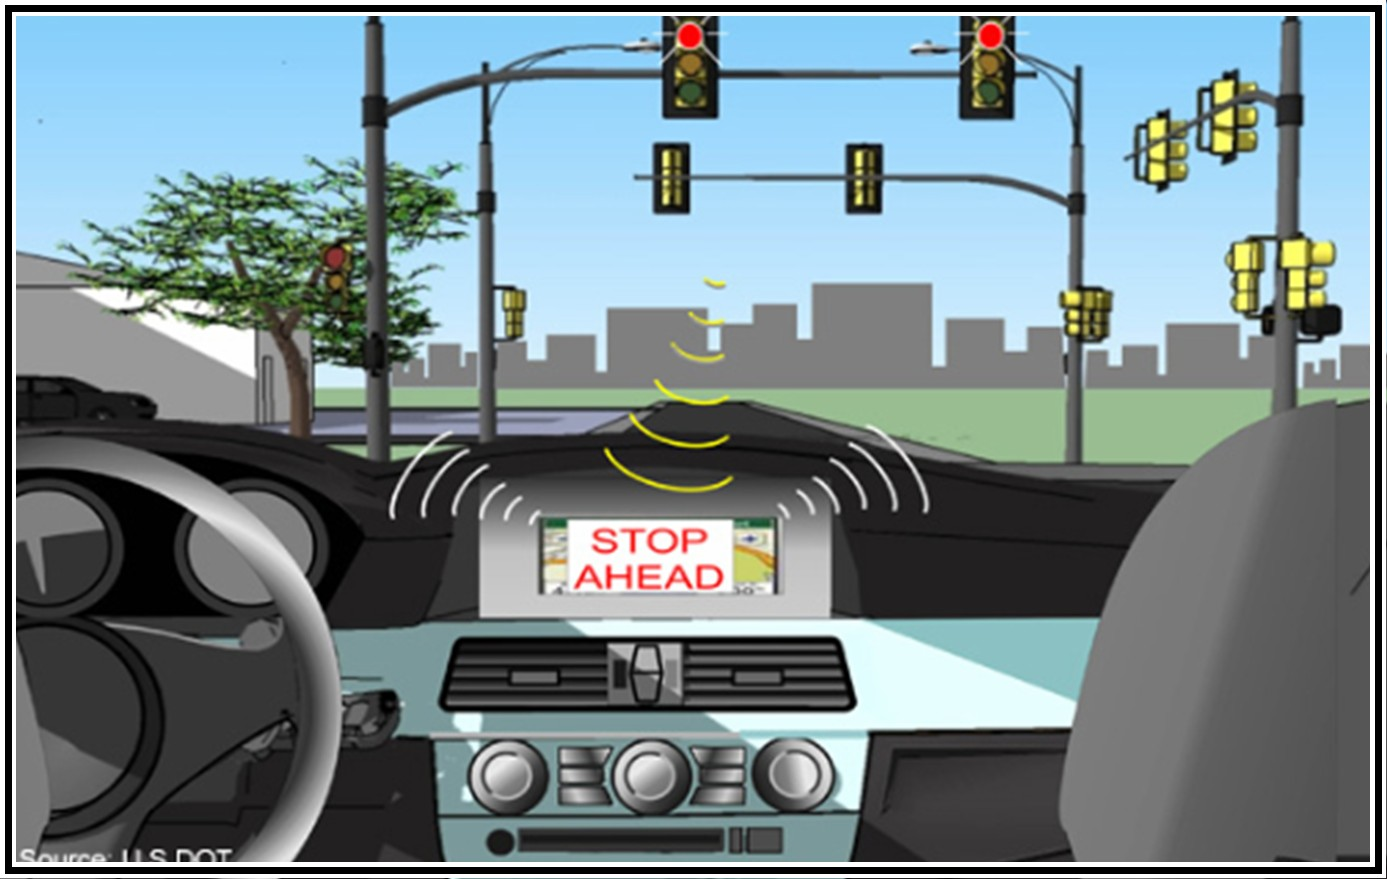 vehicle communication, warning system, modern cars